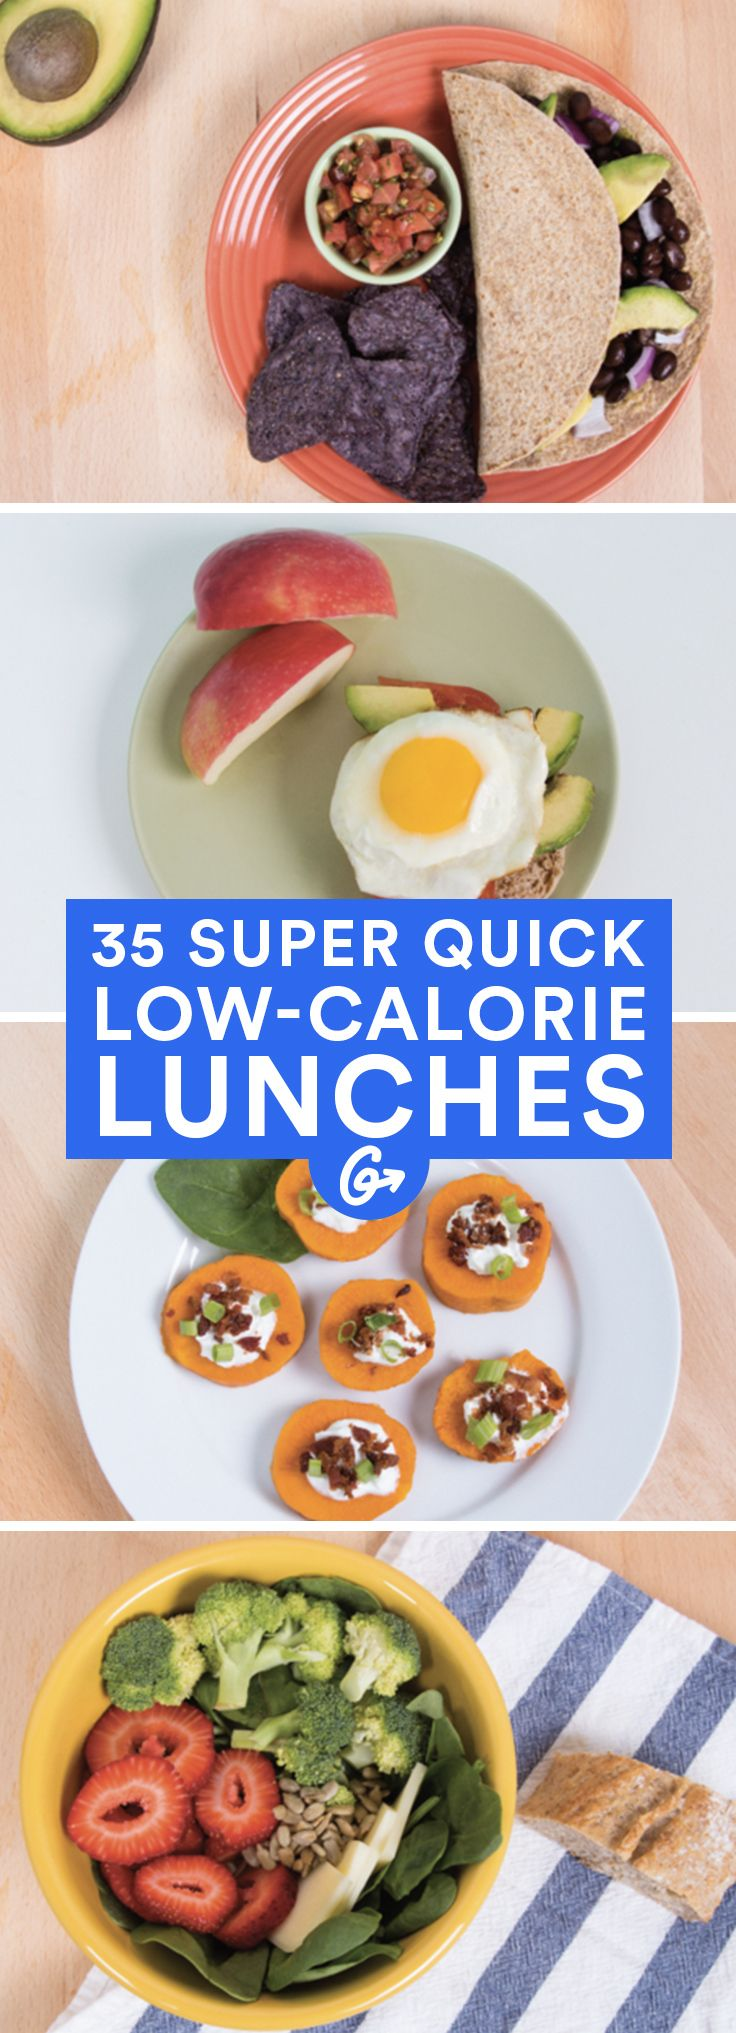 It's time to kick that brown-bag lunch up a notch! With a little planning, these lunches can seriouslt make your day. #healthy #lowcalorie #lunches http://greatist.com/health/35-quick-and-healthy-low-calorie-lunches